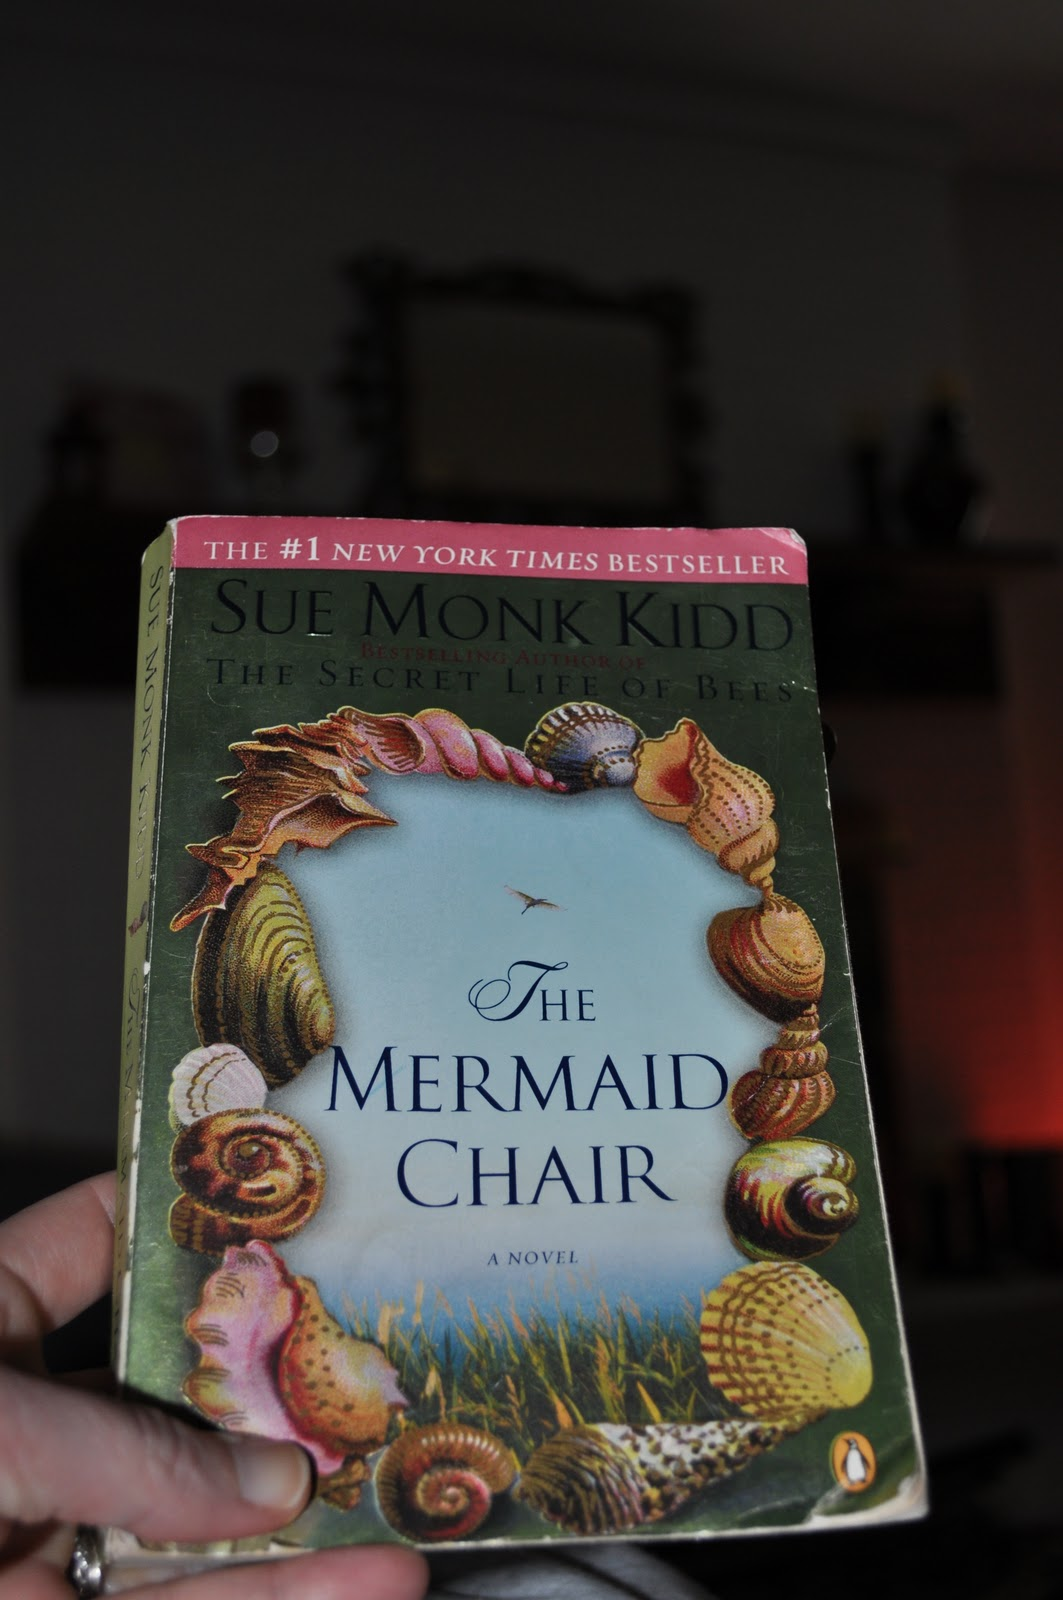 I finished The Mermaid Chair by Sue Monk Kidd over the weekend. I LOVED her first book The Secret Life of Bees when we read it in book club a couple of ... & The Mermaid Chair u0026 Art of Racing in the Rain - Suzu0027s Treats